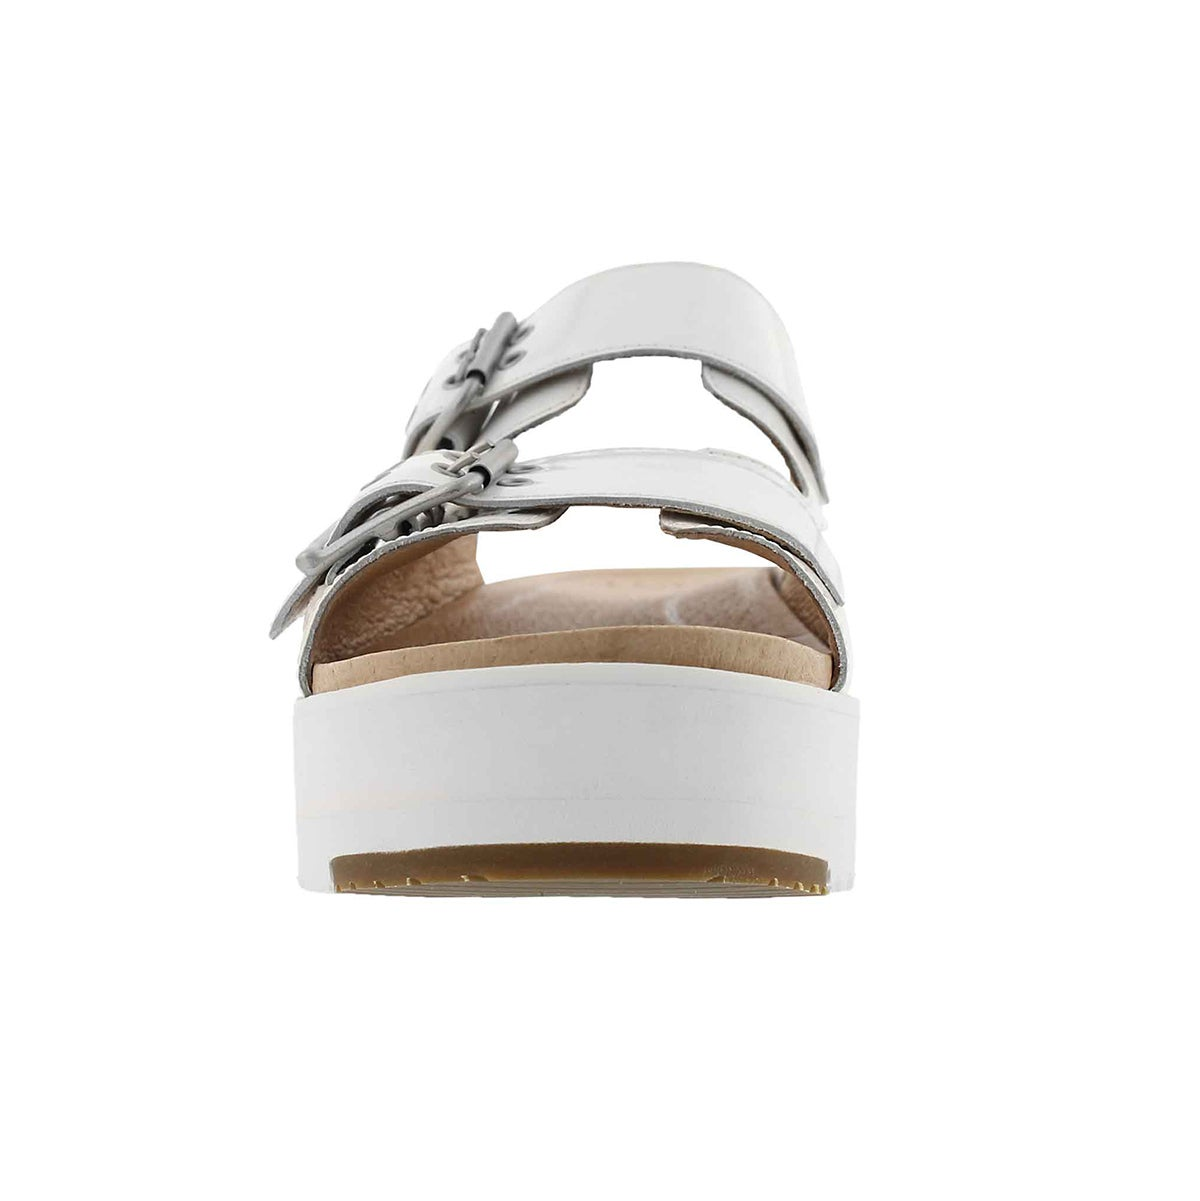 Lds Cammie wht casual slide sandal